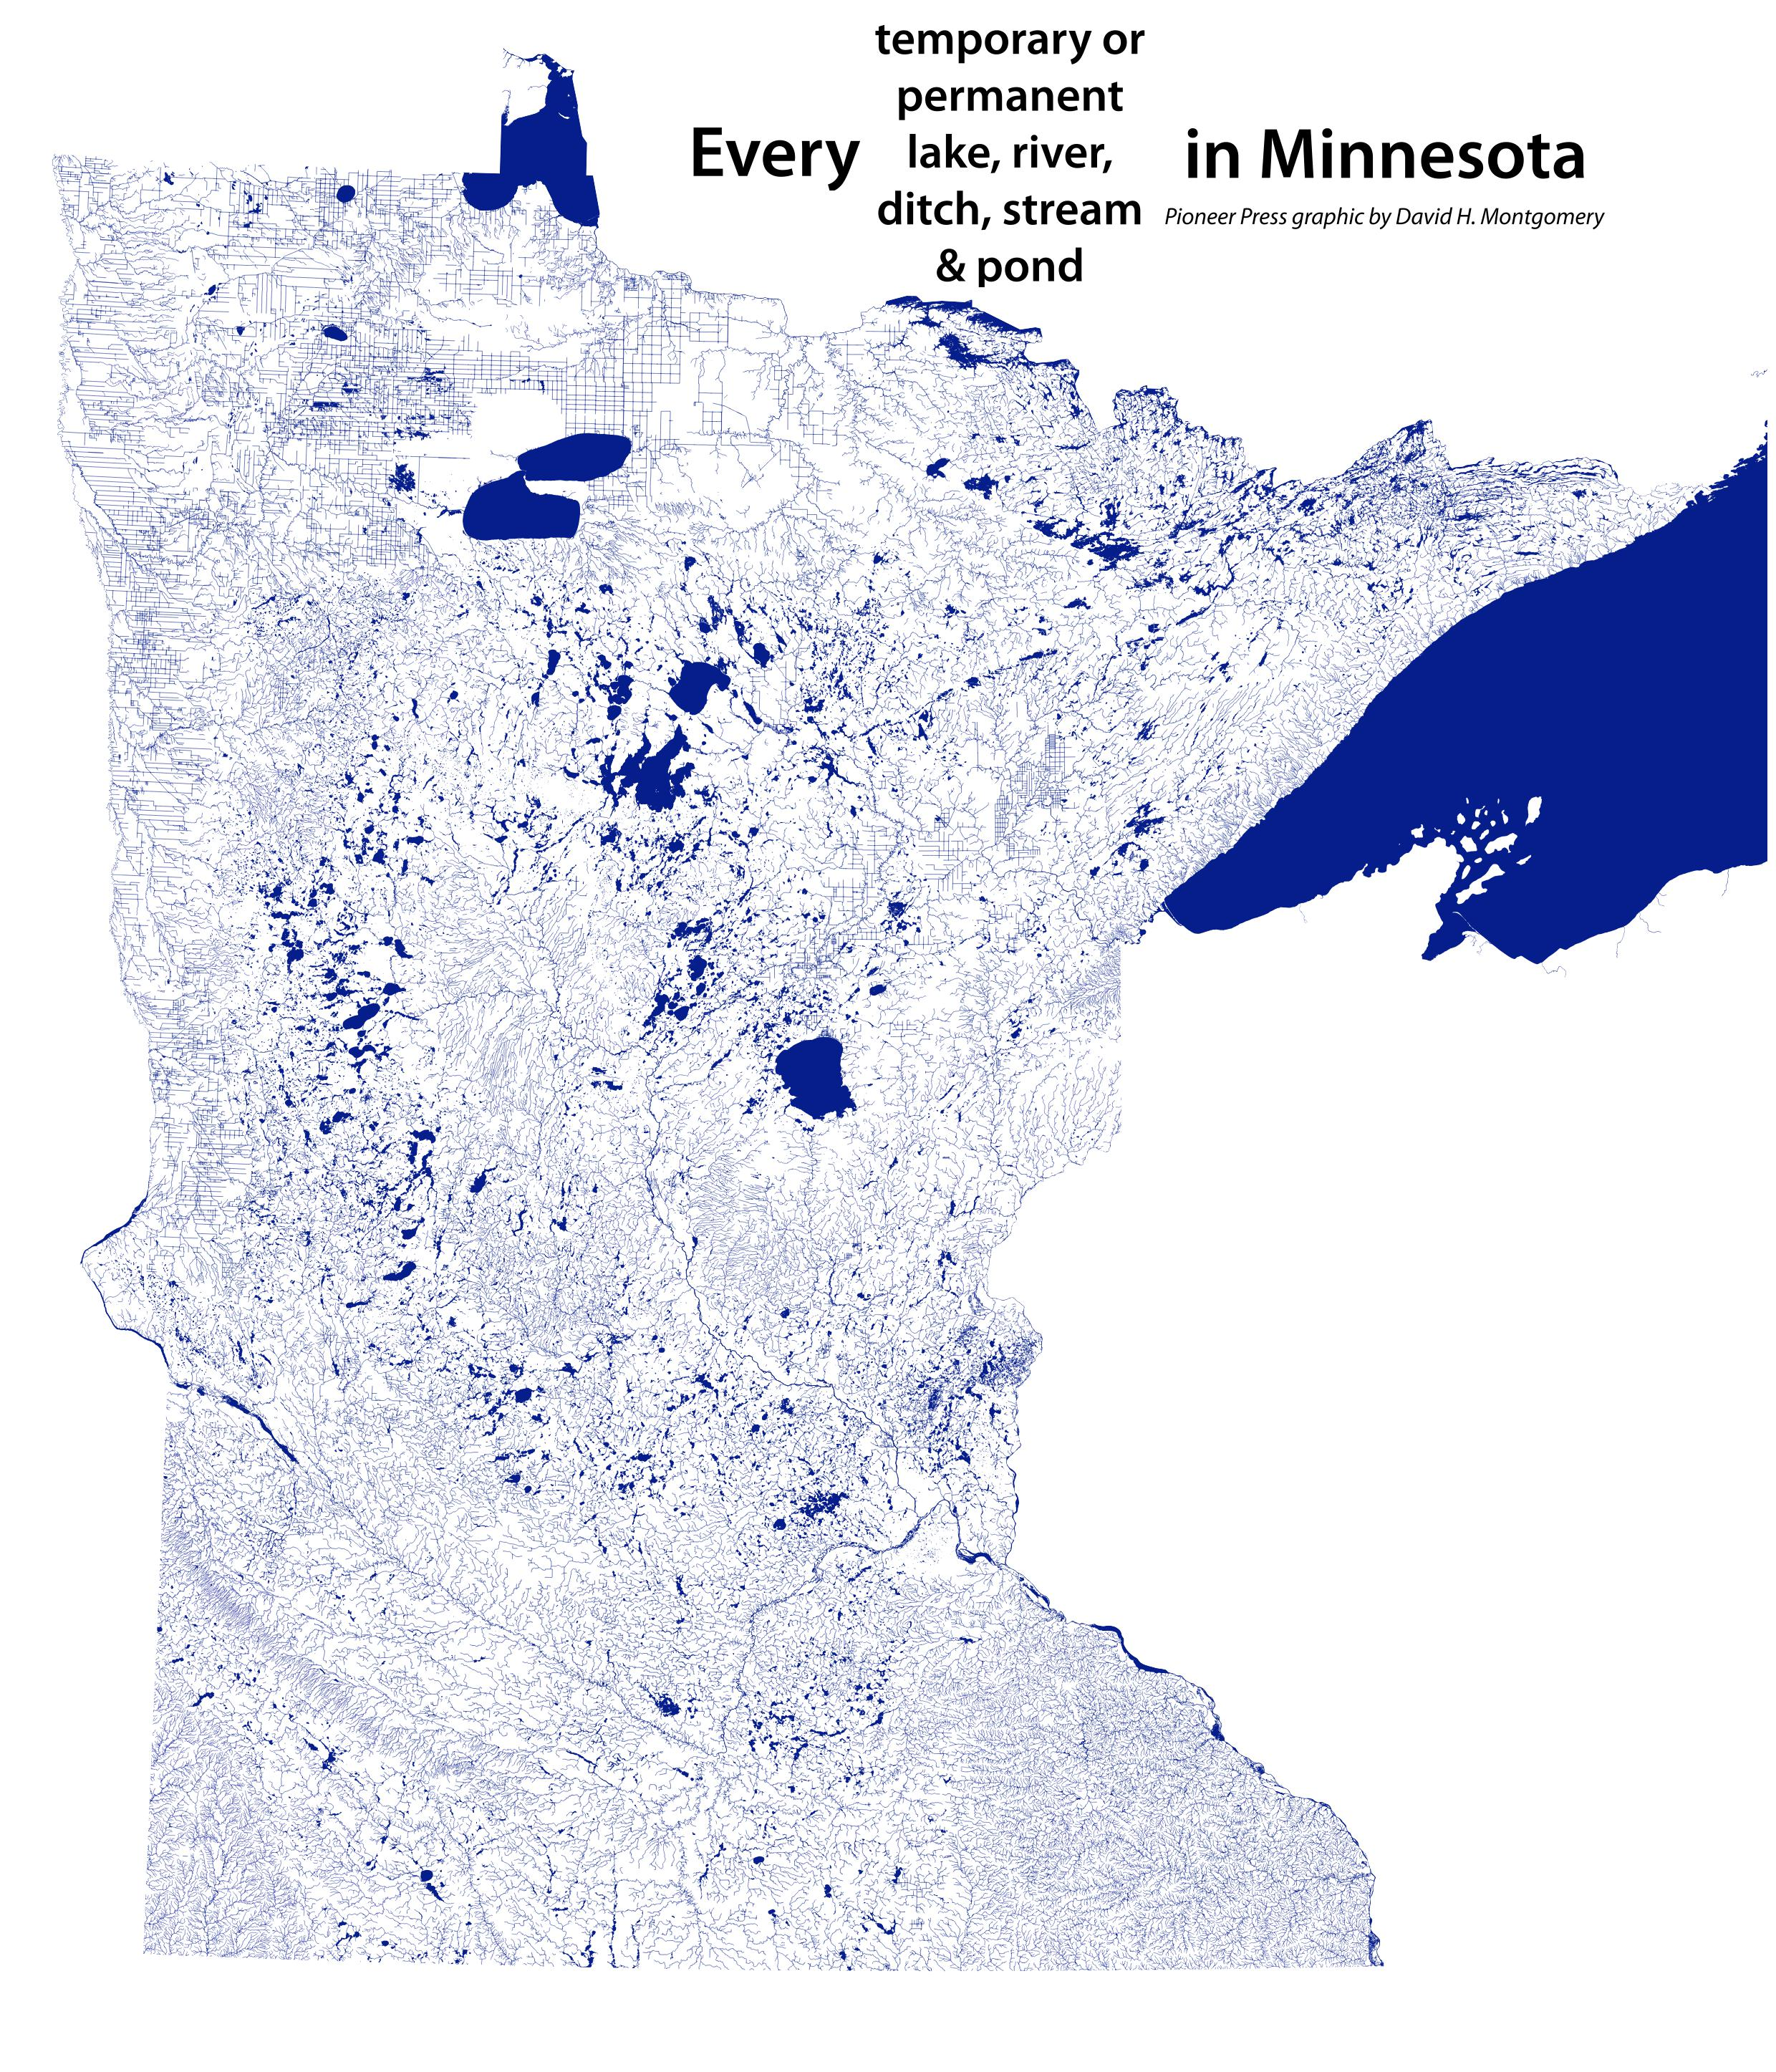 minnesota have does many lakes How